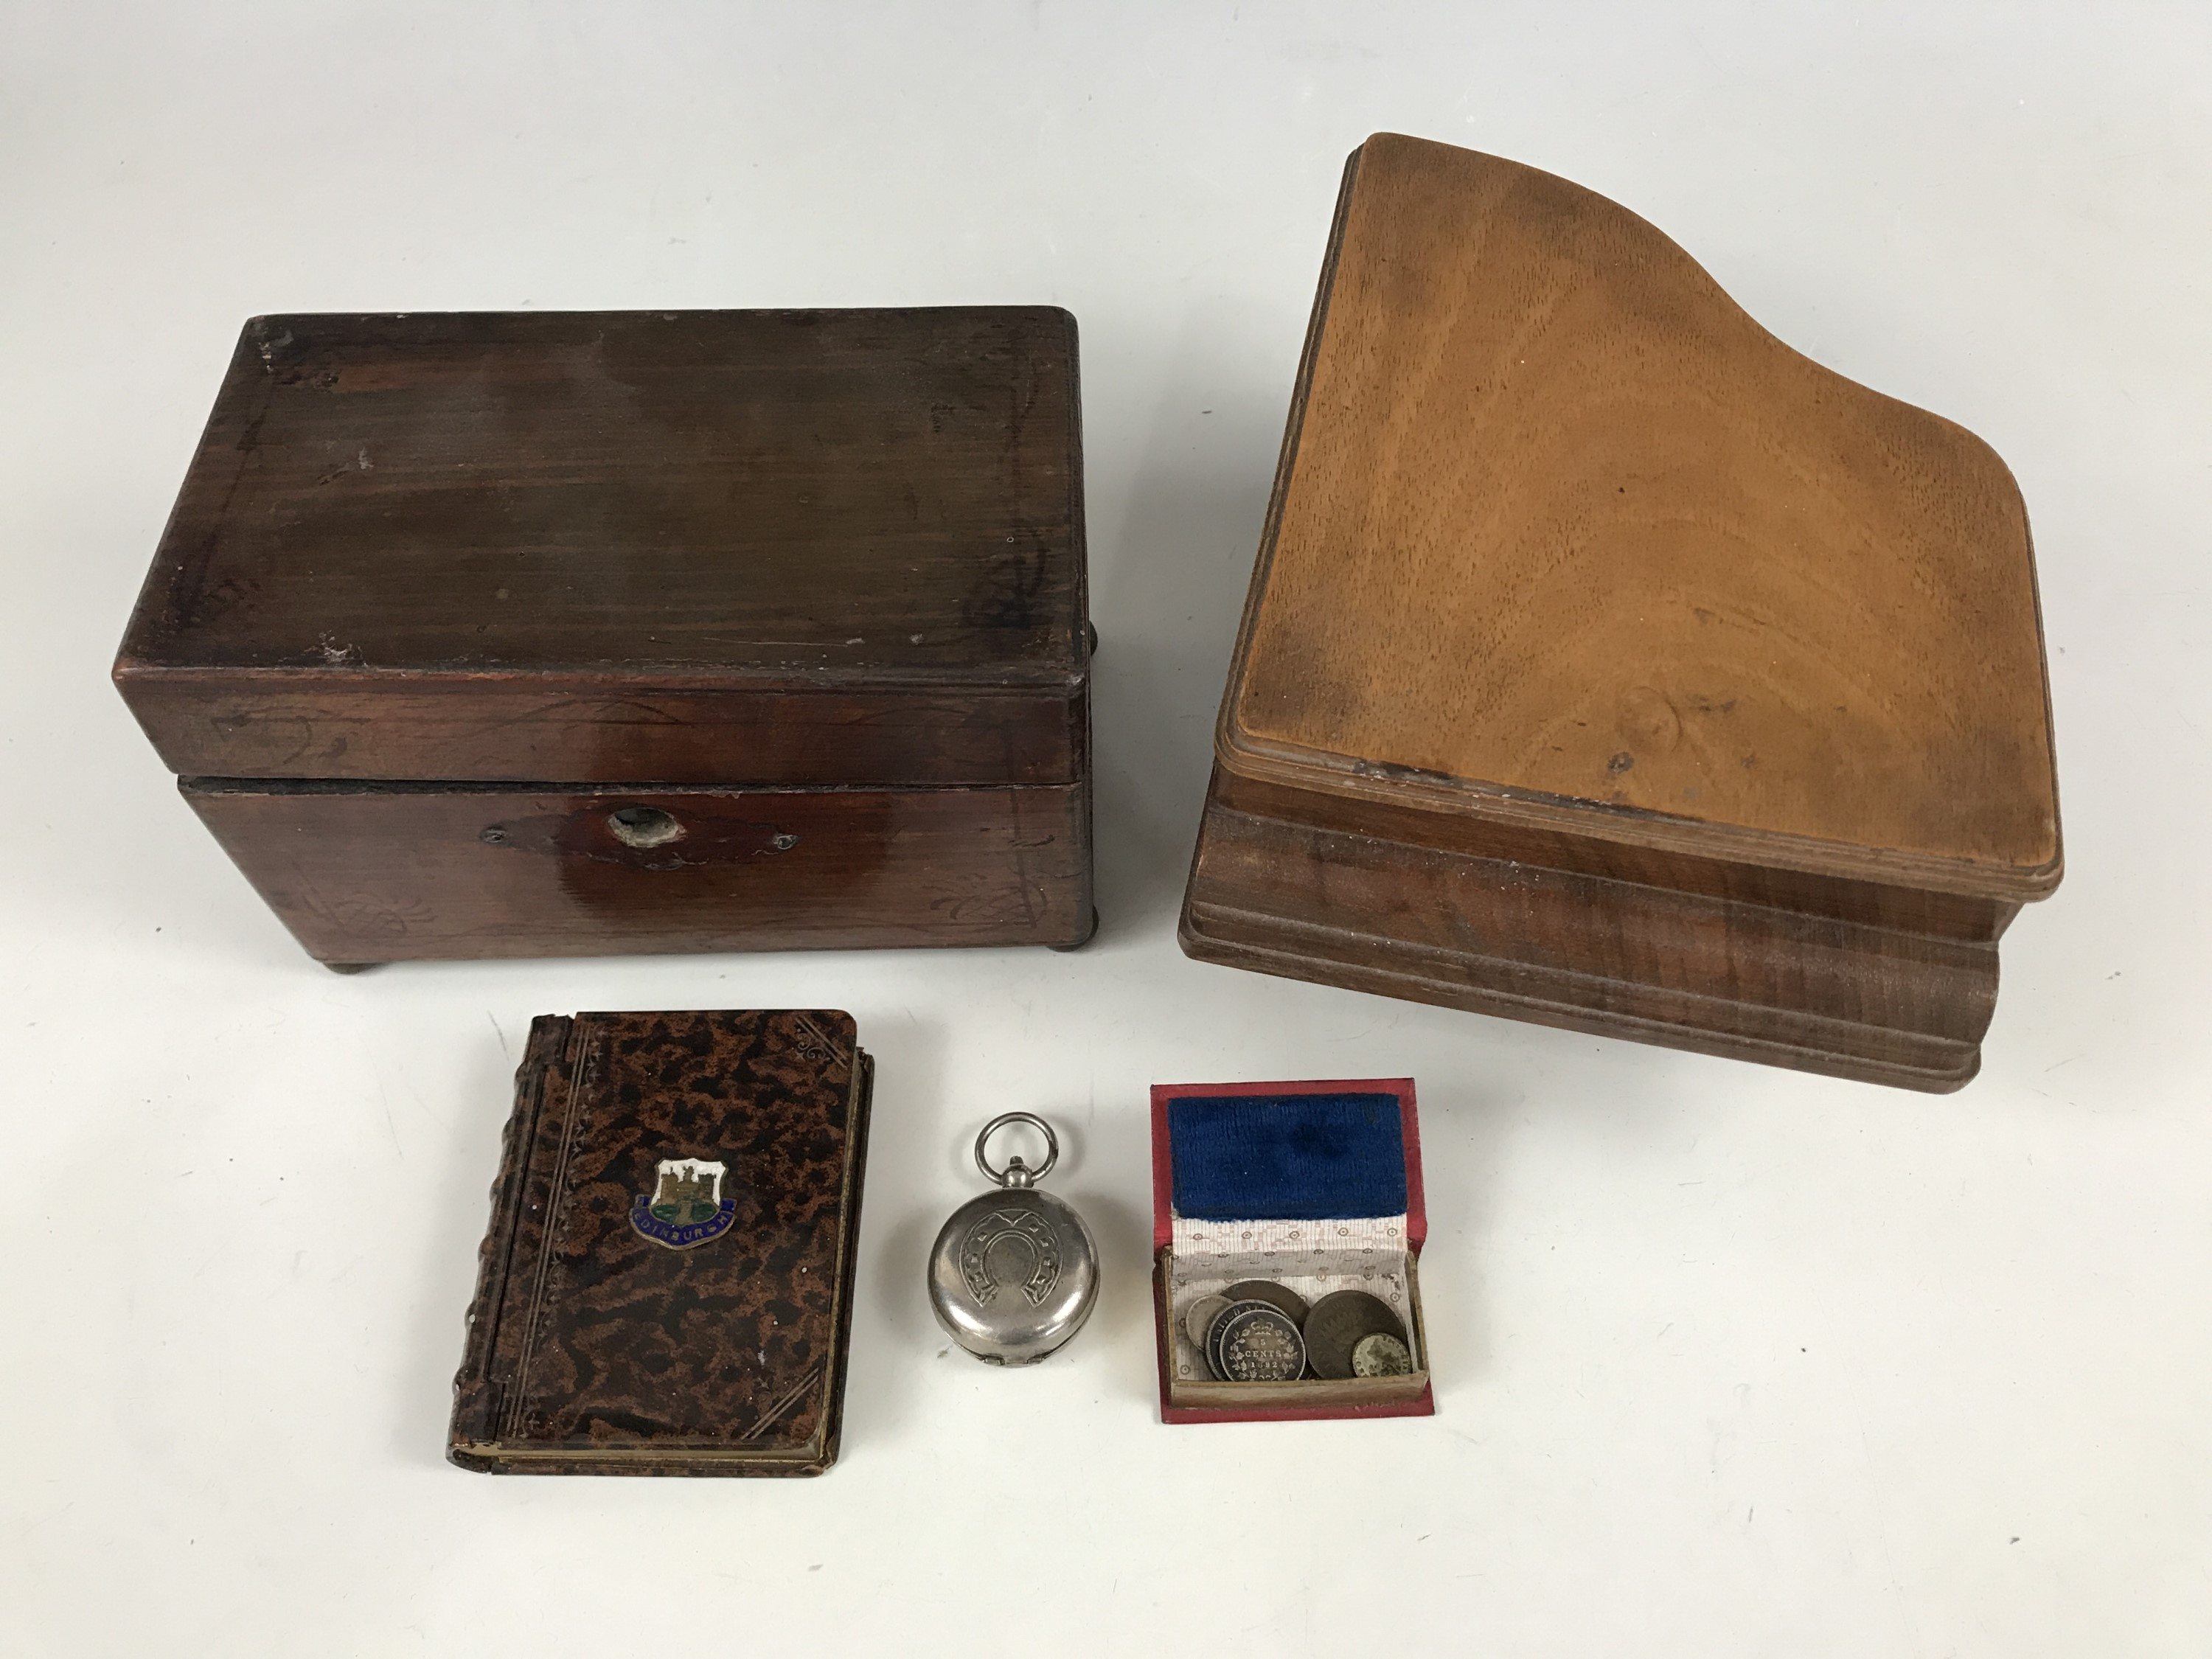 Lot 18A - Collectors' items including a novelty musical trinket box modelled as a grand piano, an Edinburgh